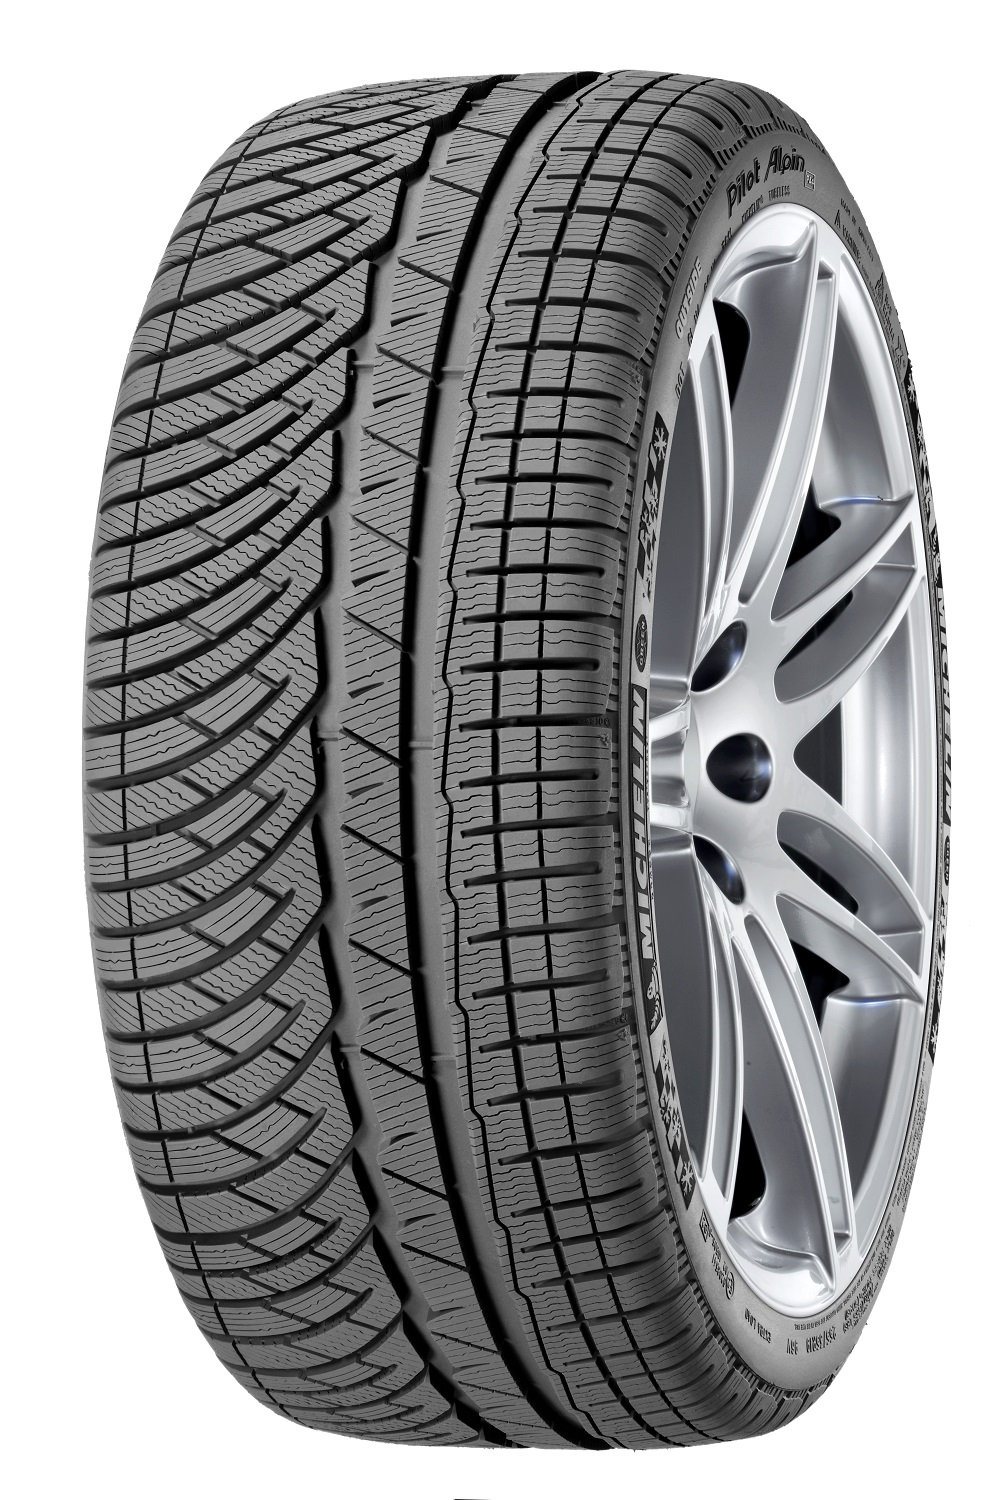 Anvelopa iarna MICHELIN PILOT ALPIN 4 XL 235/45 R17 97V